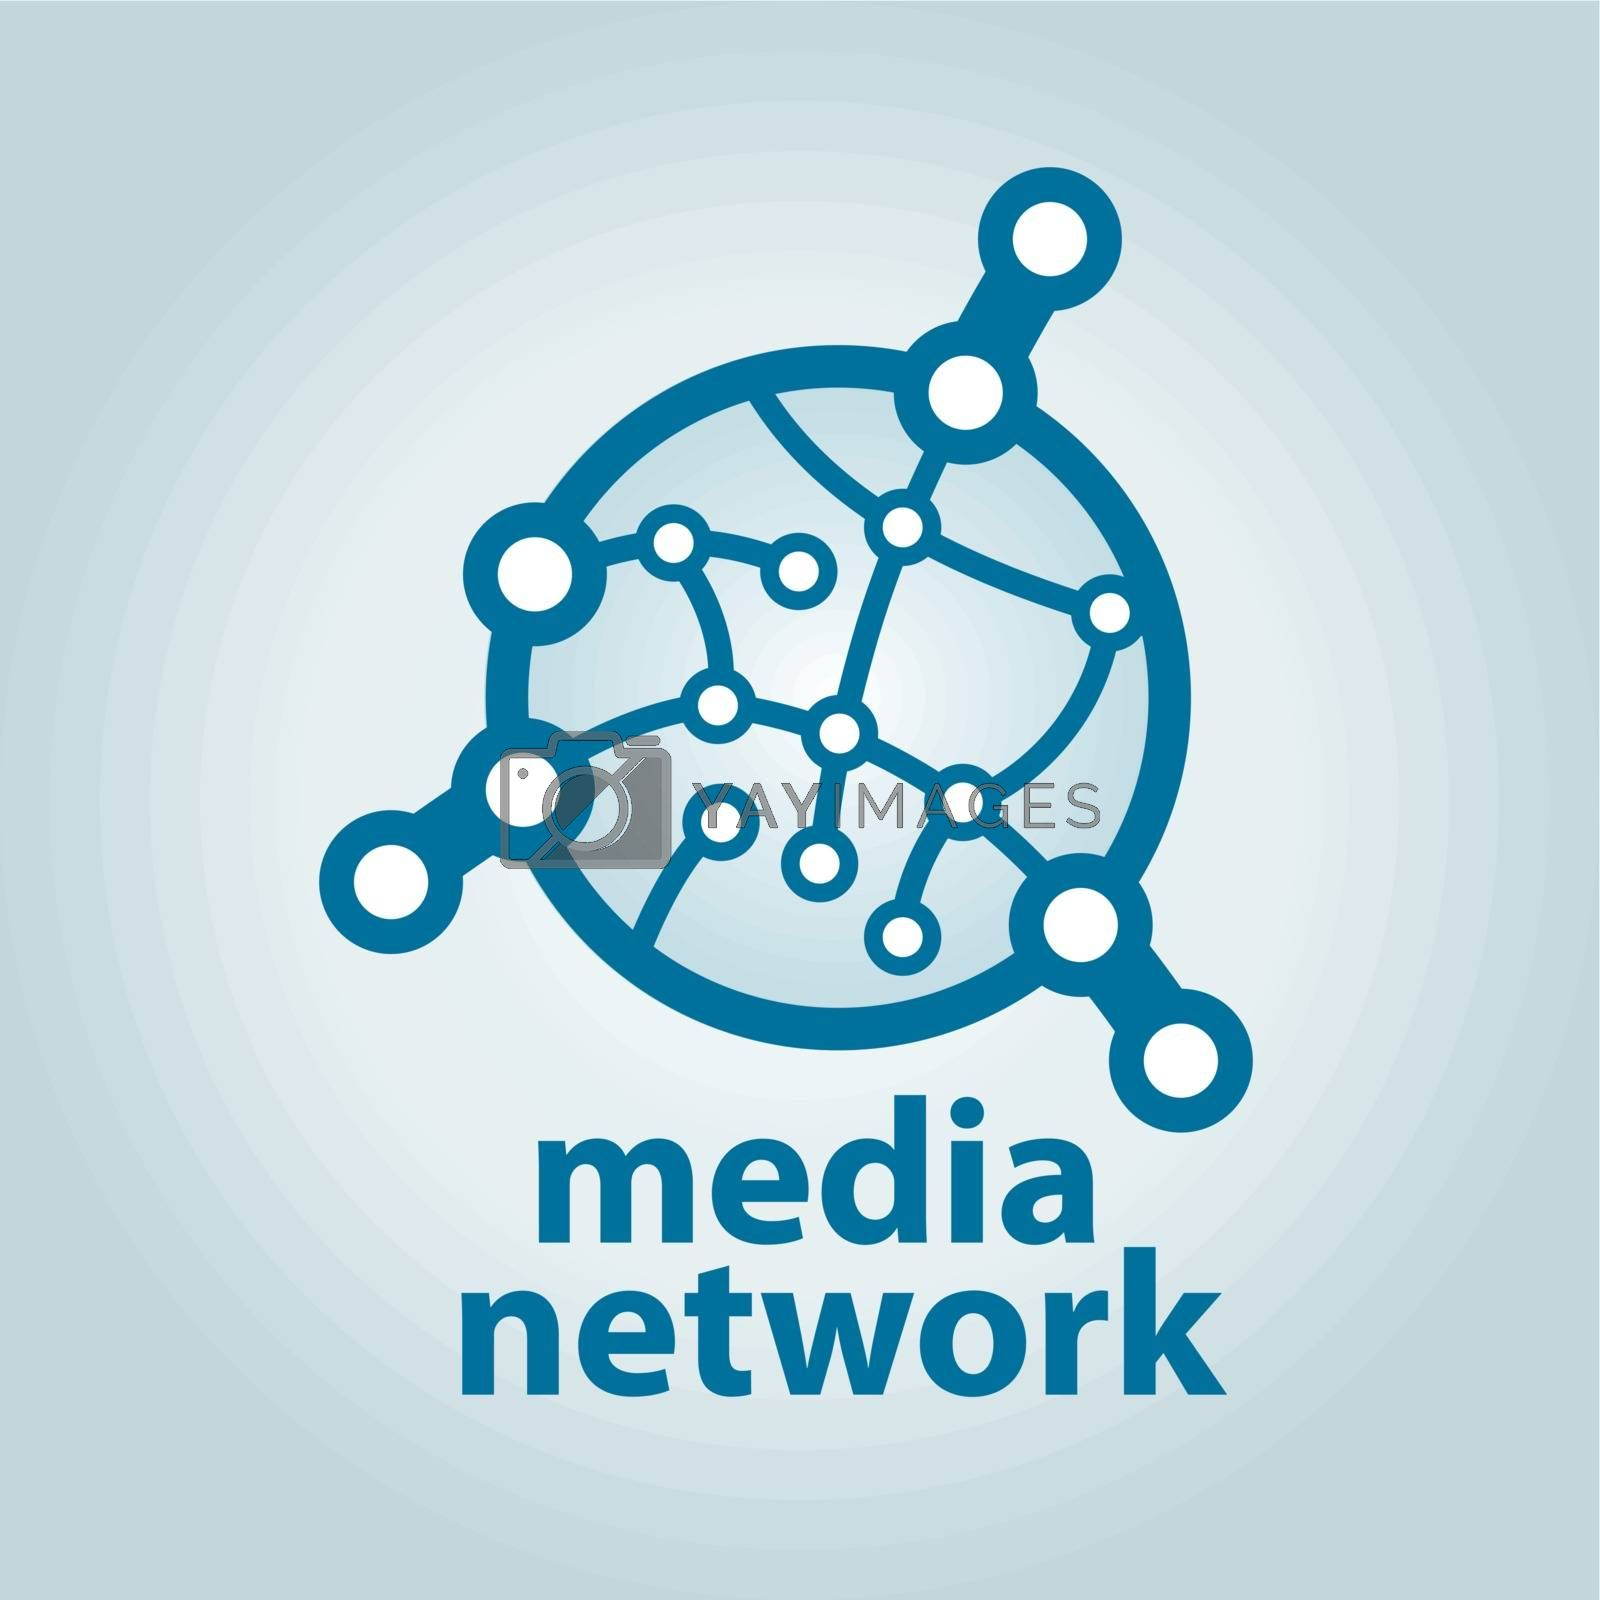 vector logo and electronic media network